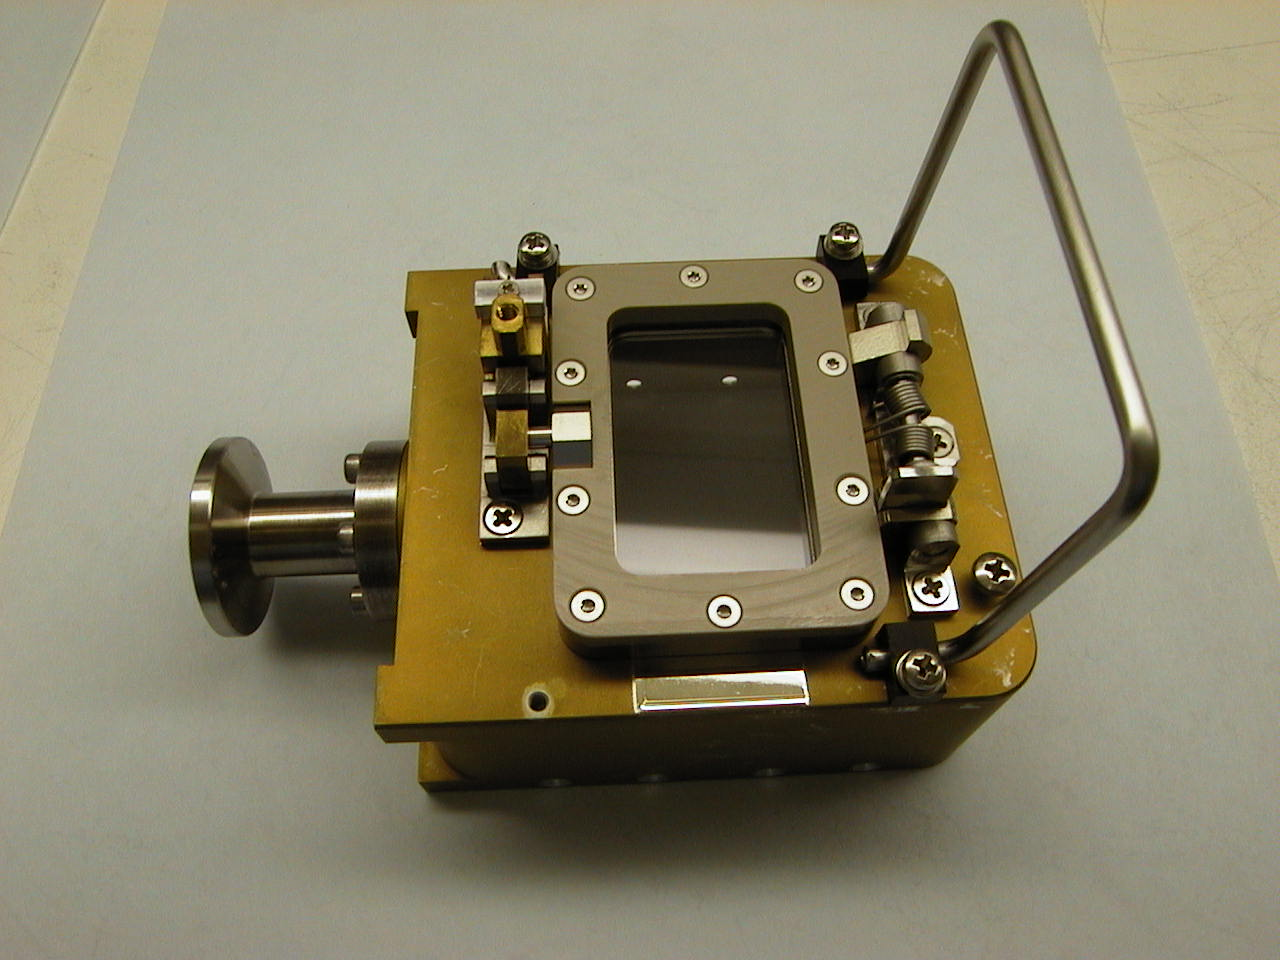 JUNO Detector housing assembly